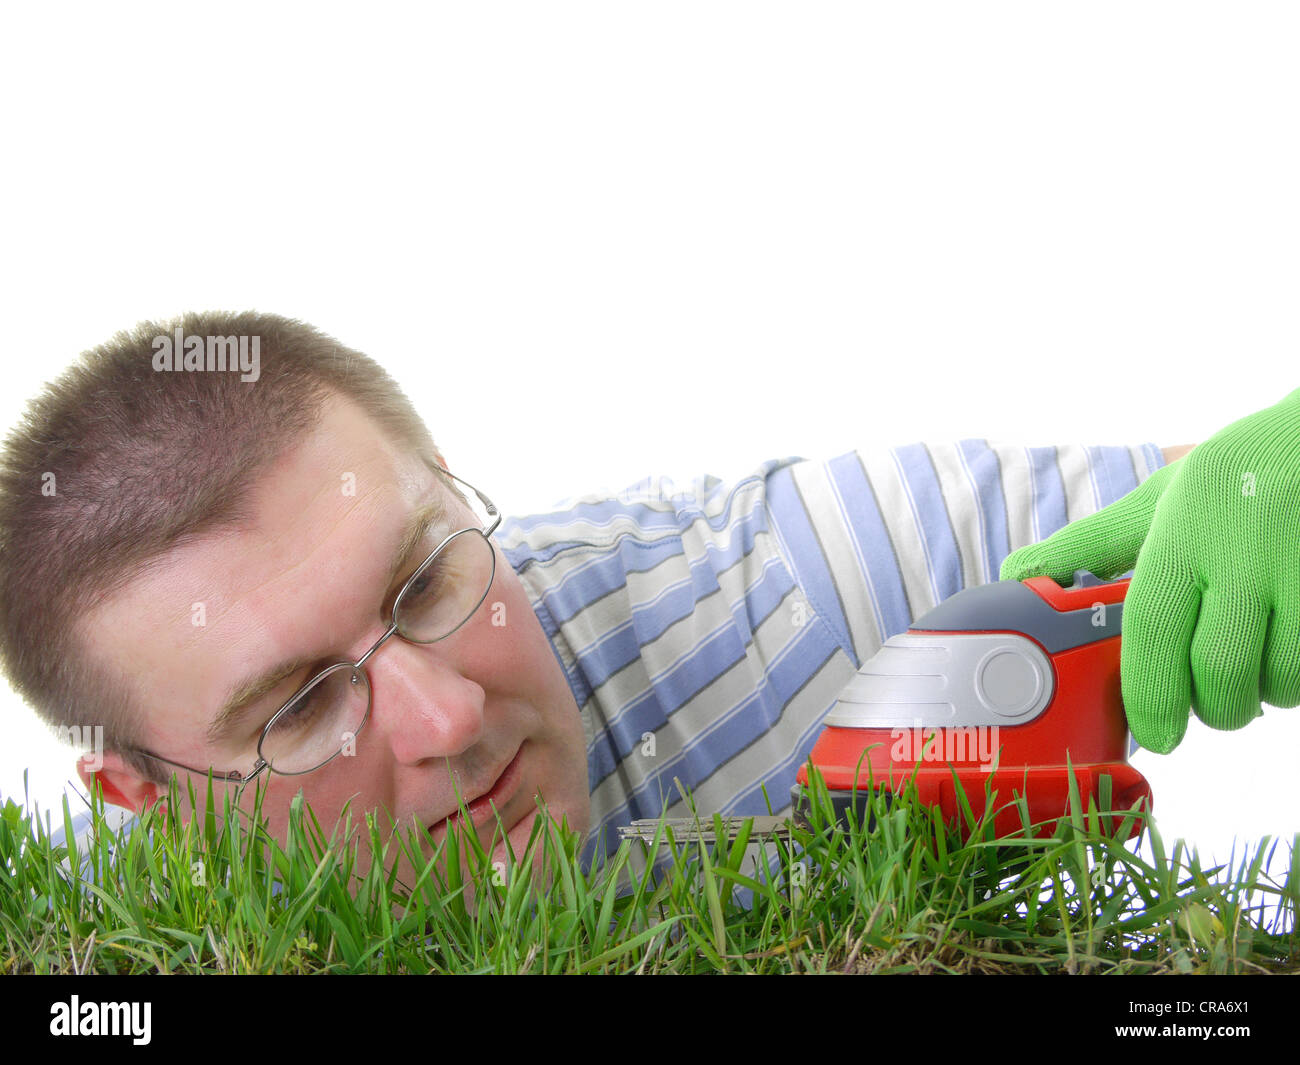 Young man trimming fresh grass with trimmer - Stock Image